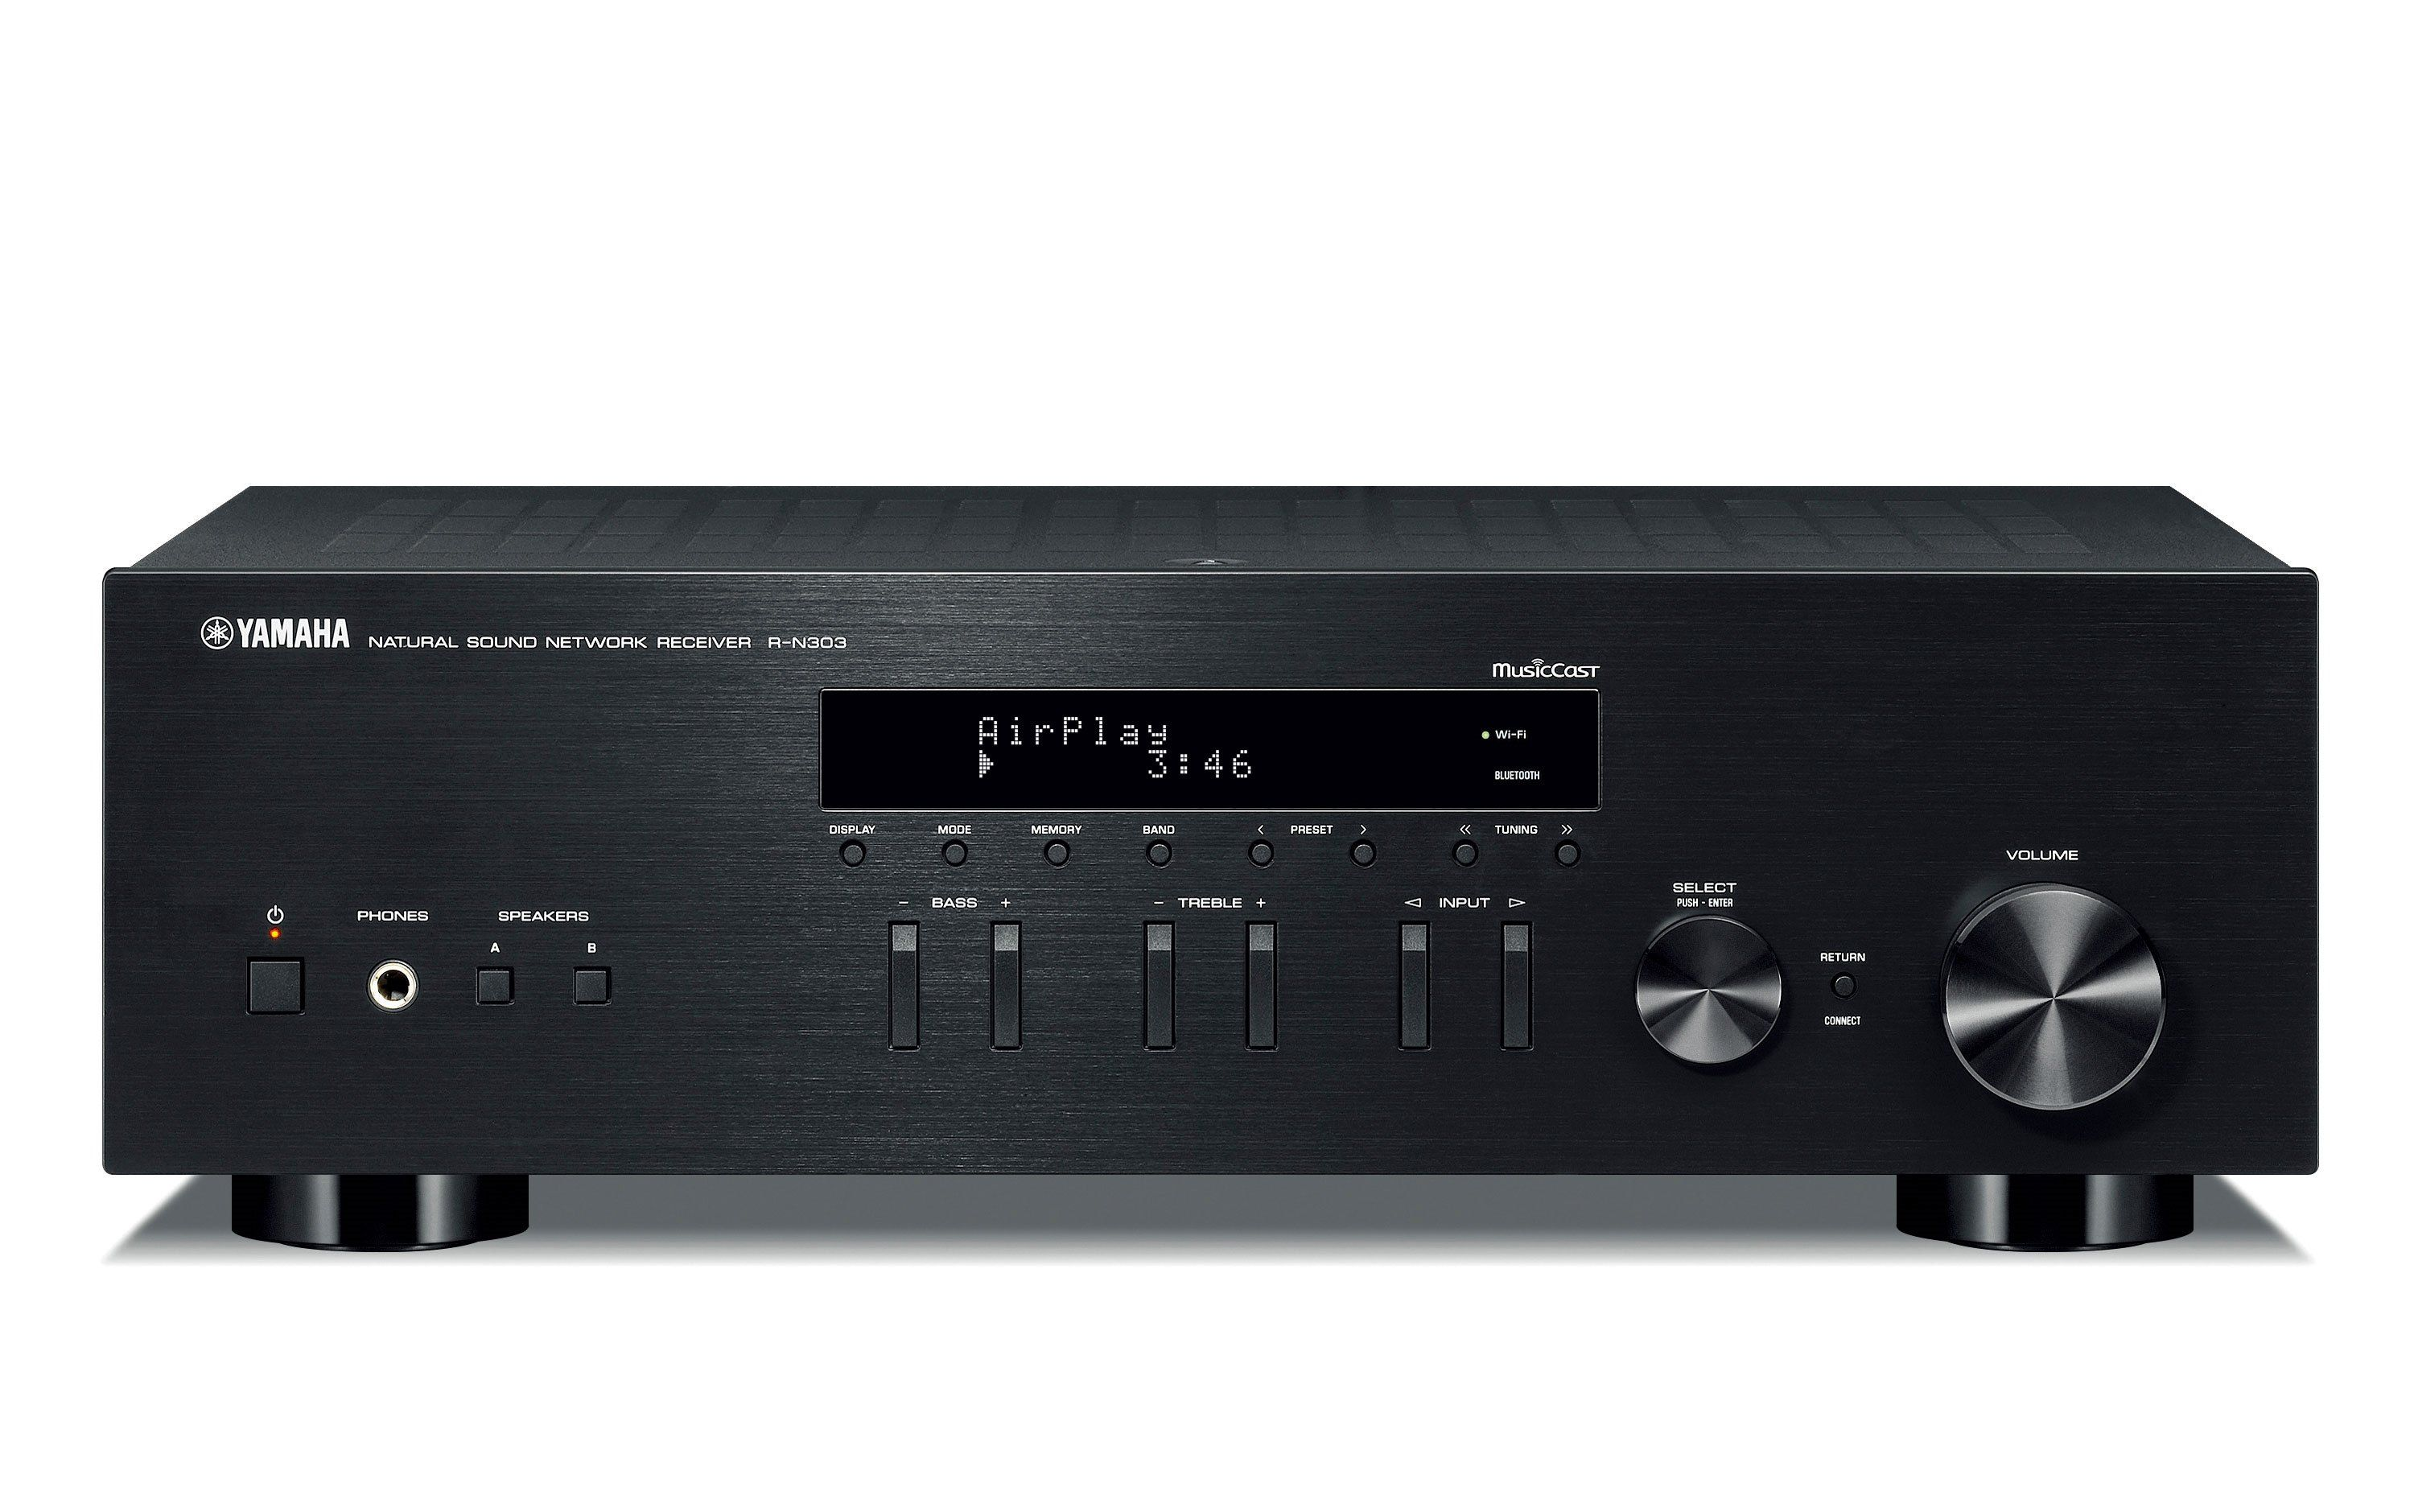 Yamaha Stereo Network Receiver R N303 R N303 Rn303